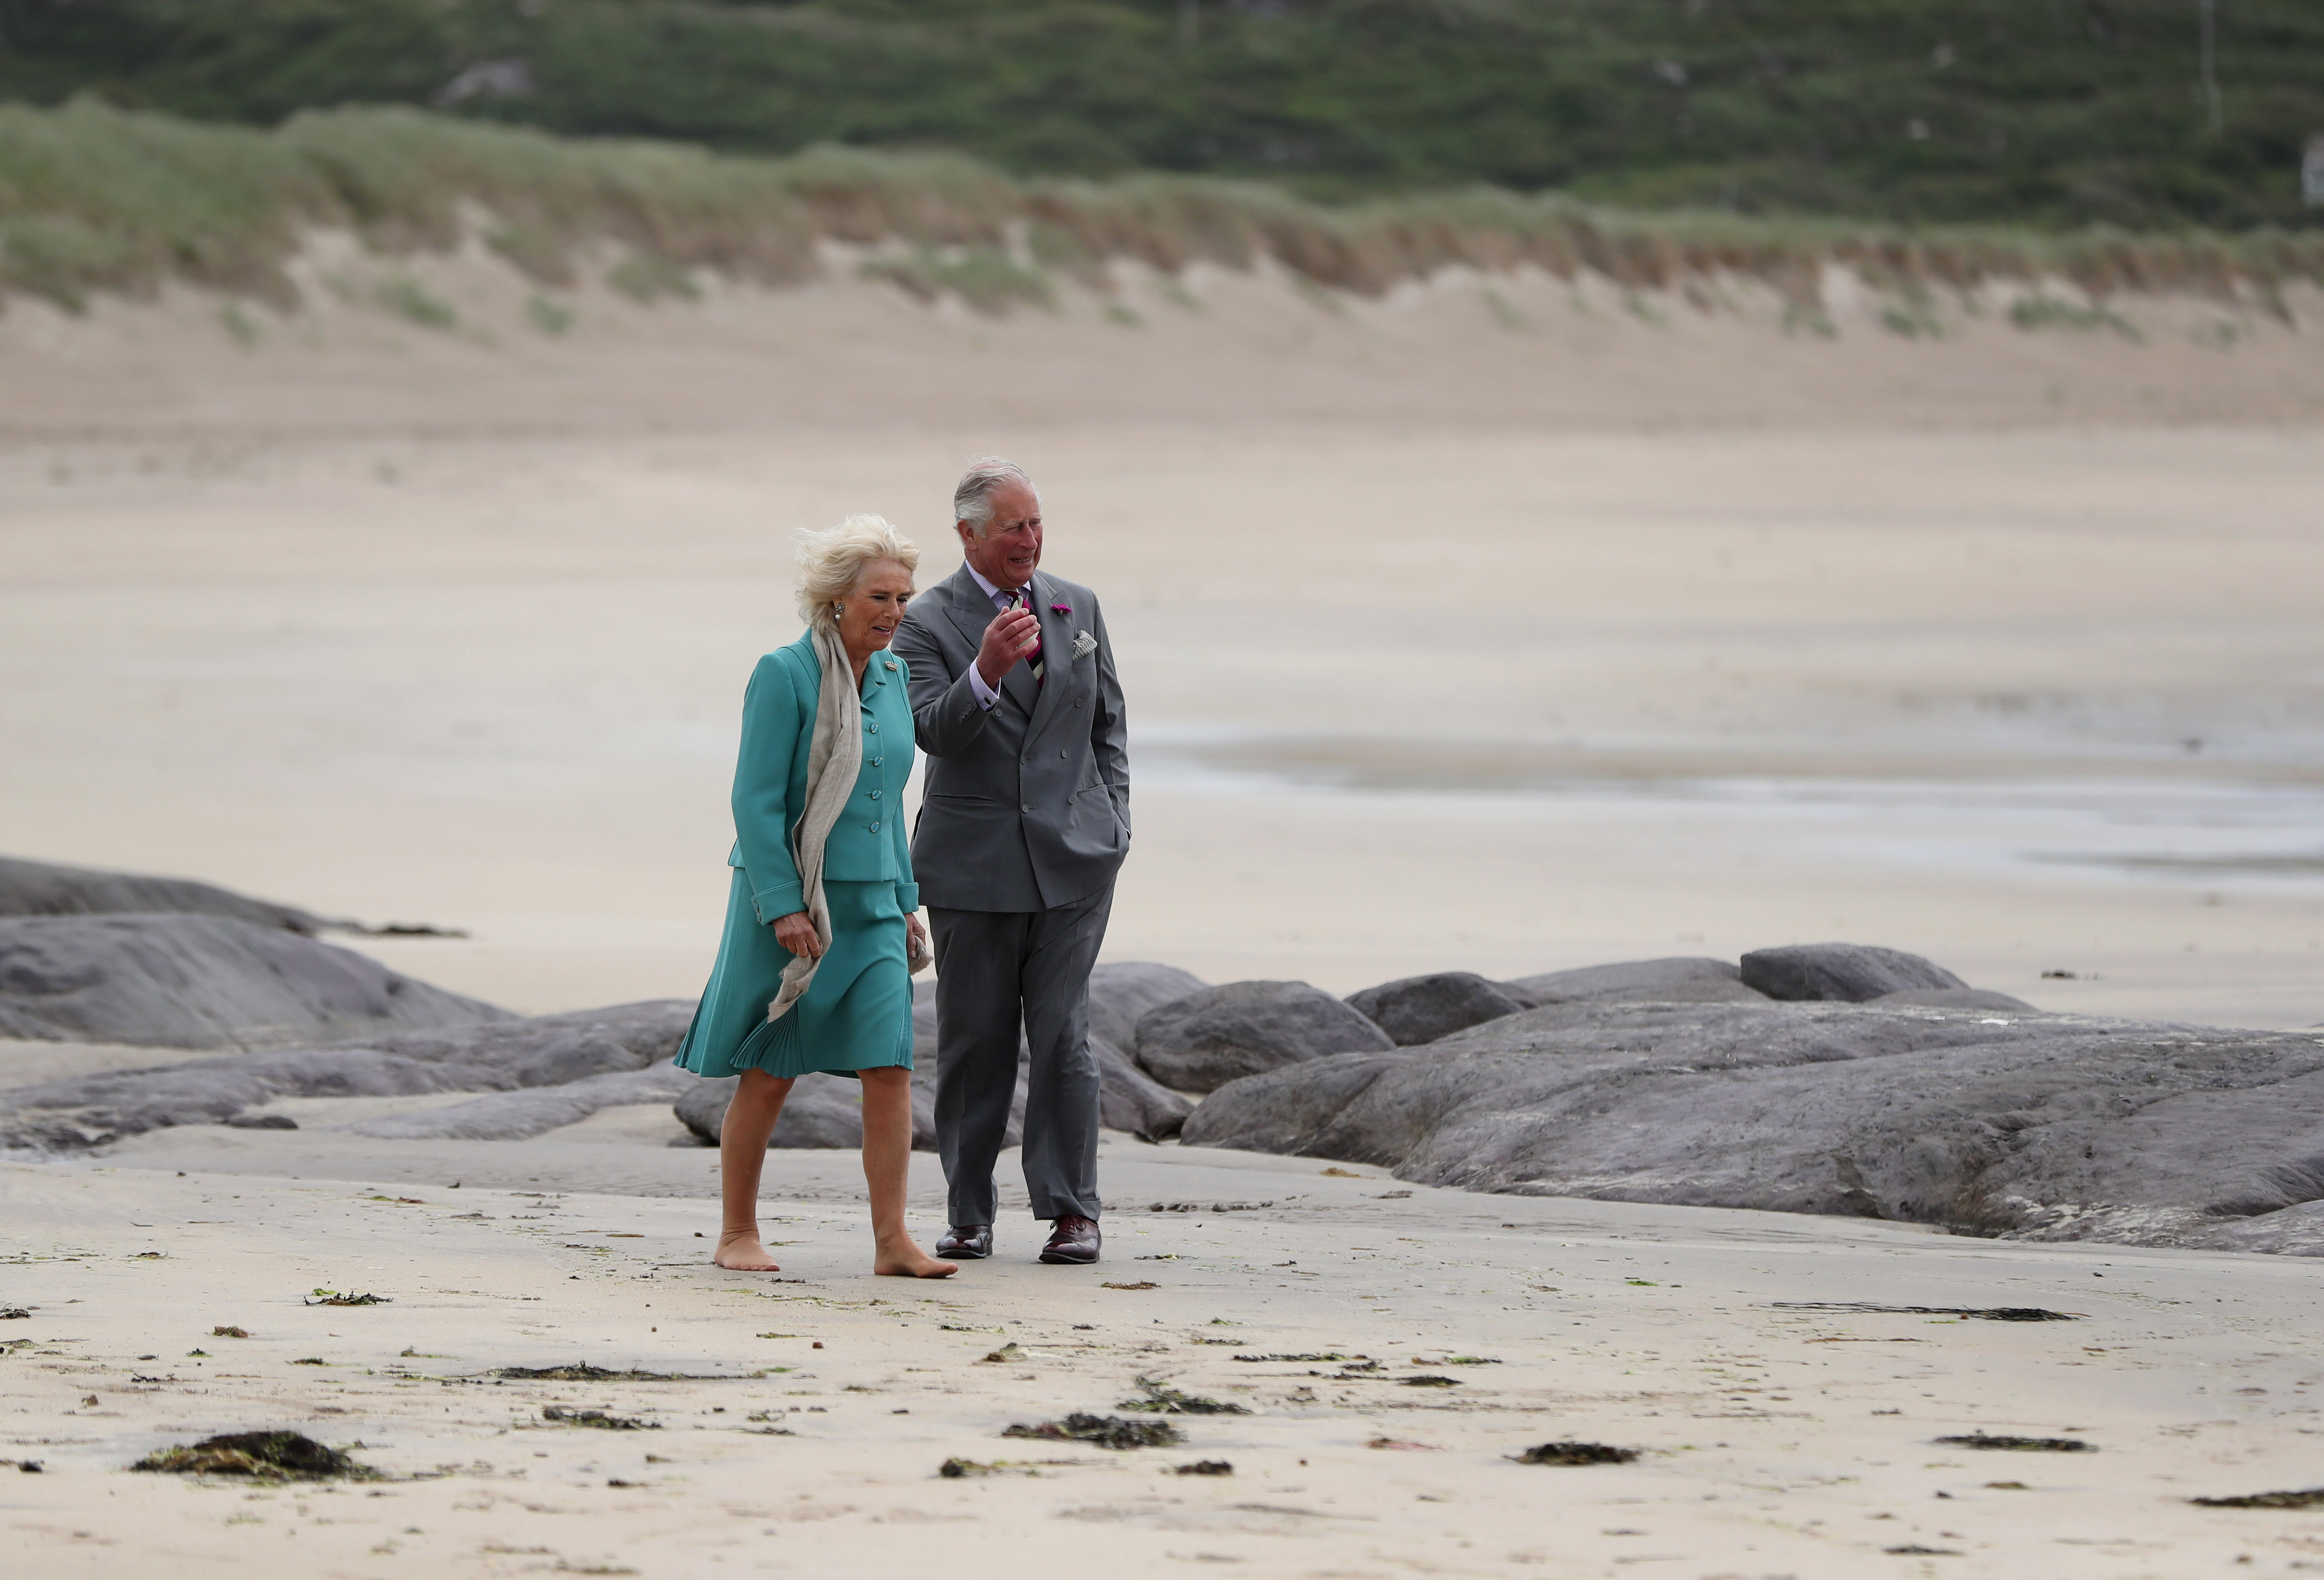 Prince Charles, Prince of Wales and Camilla, Duchess of Cornwall walk on Derrynane beach in Co Kerry during thier tour of Northern Ireland and the Republic of Ireland on June 15, 2018 in Derrynane, Ireland.